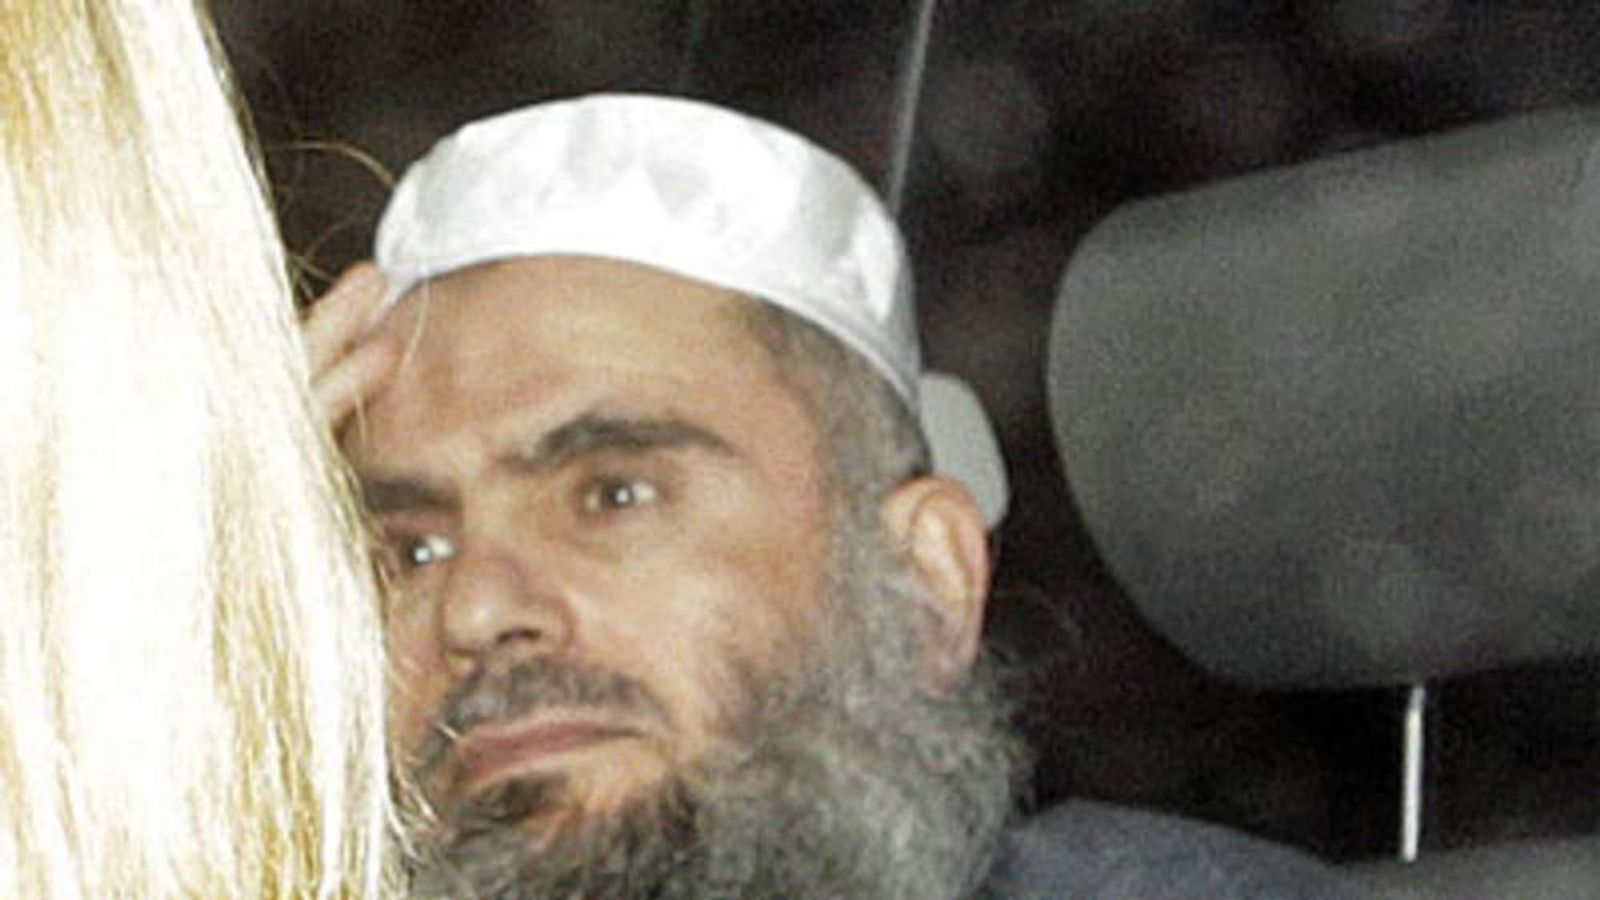 Radical islamic cleric Abu Qatada is released from prison